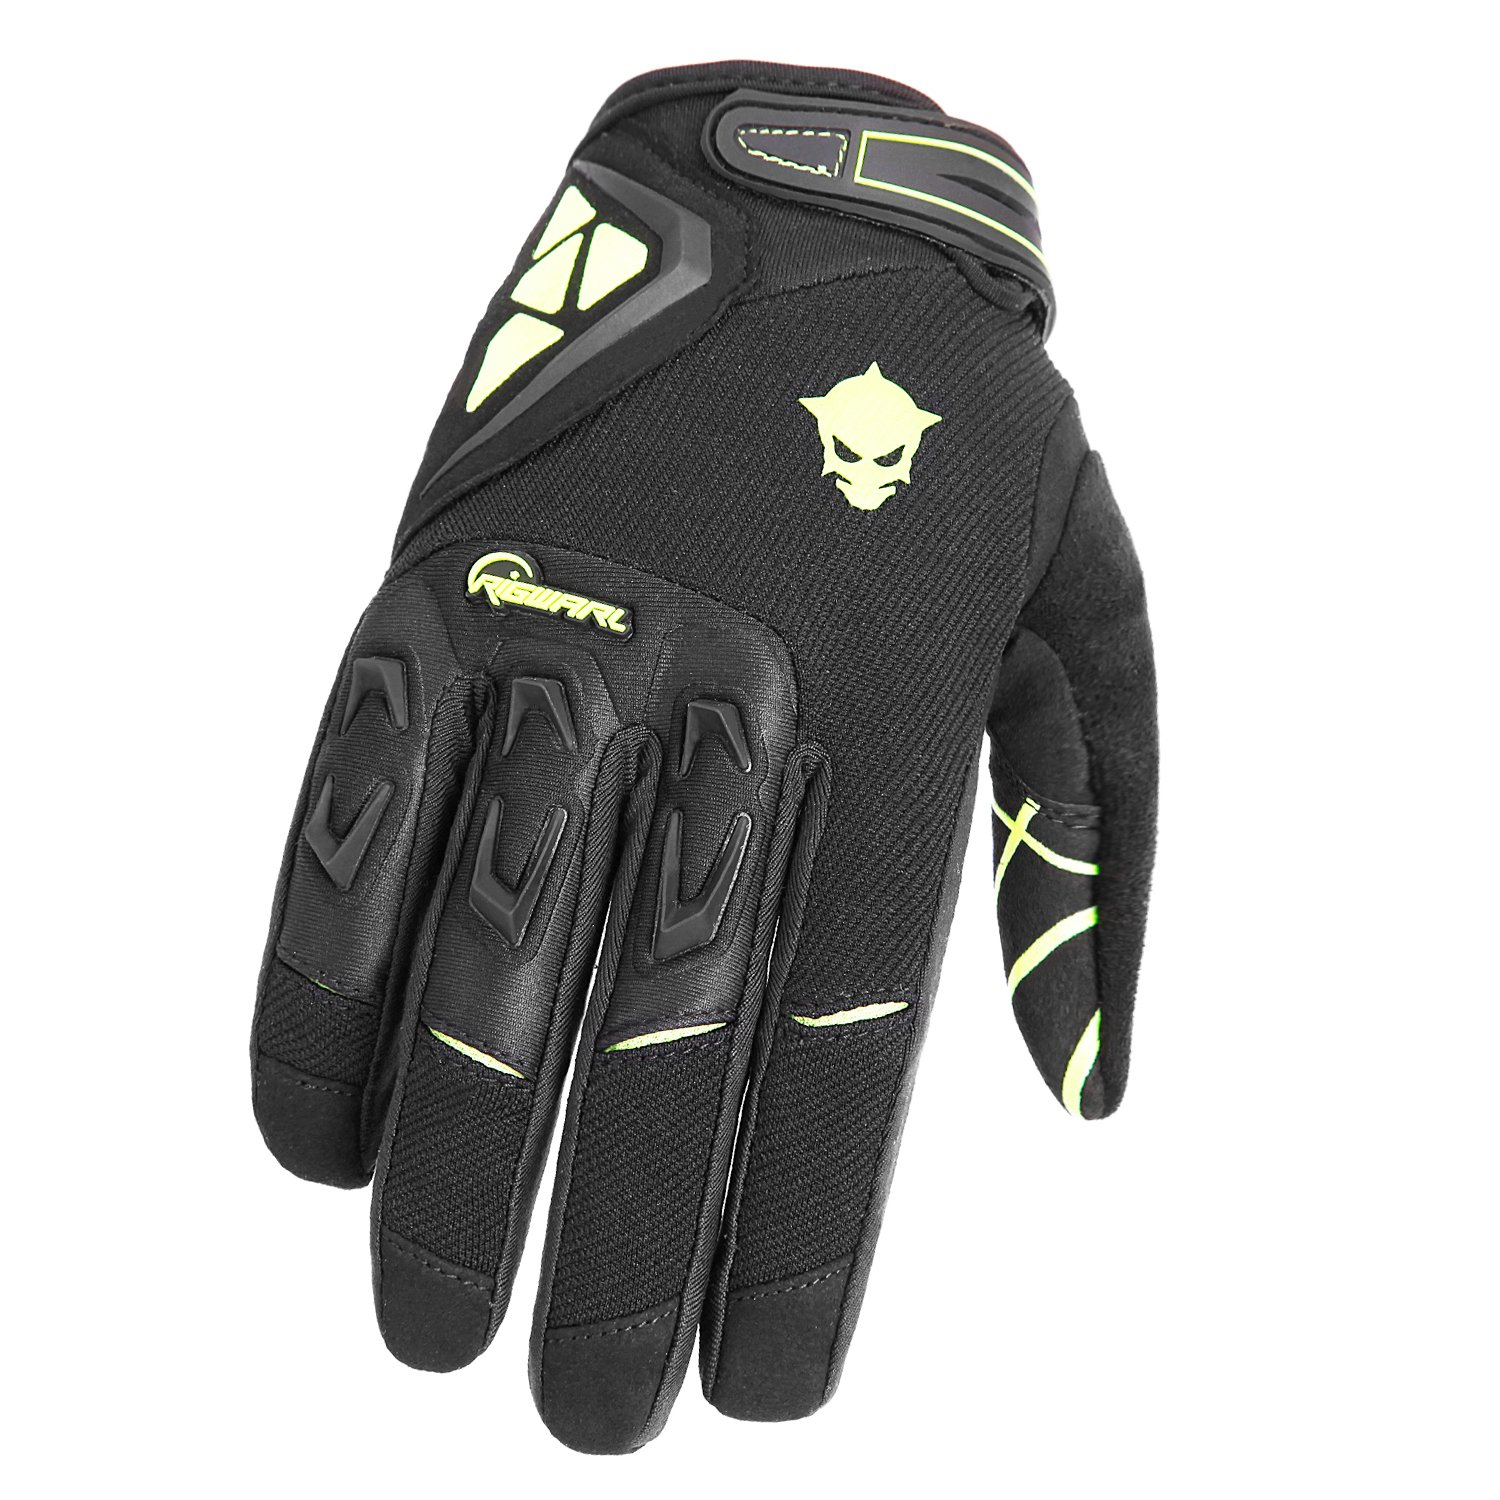 RIGWARL Full Finger Motocross Cycling Gloves with Protect Shell for Bike Racing Motorcycle (Black, Large)